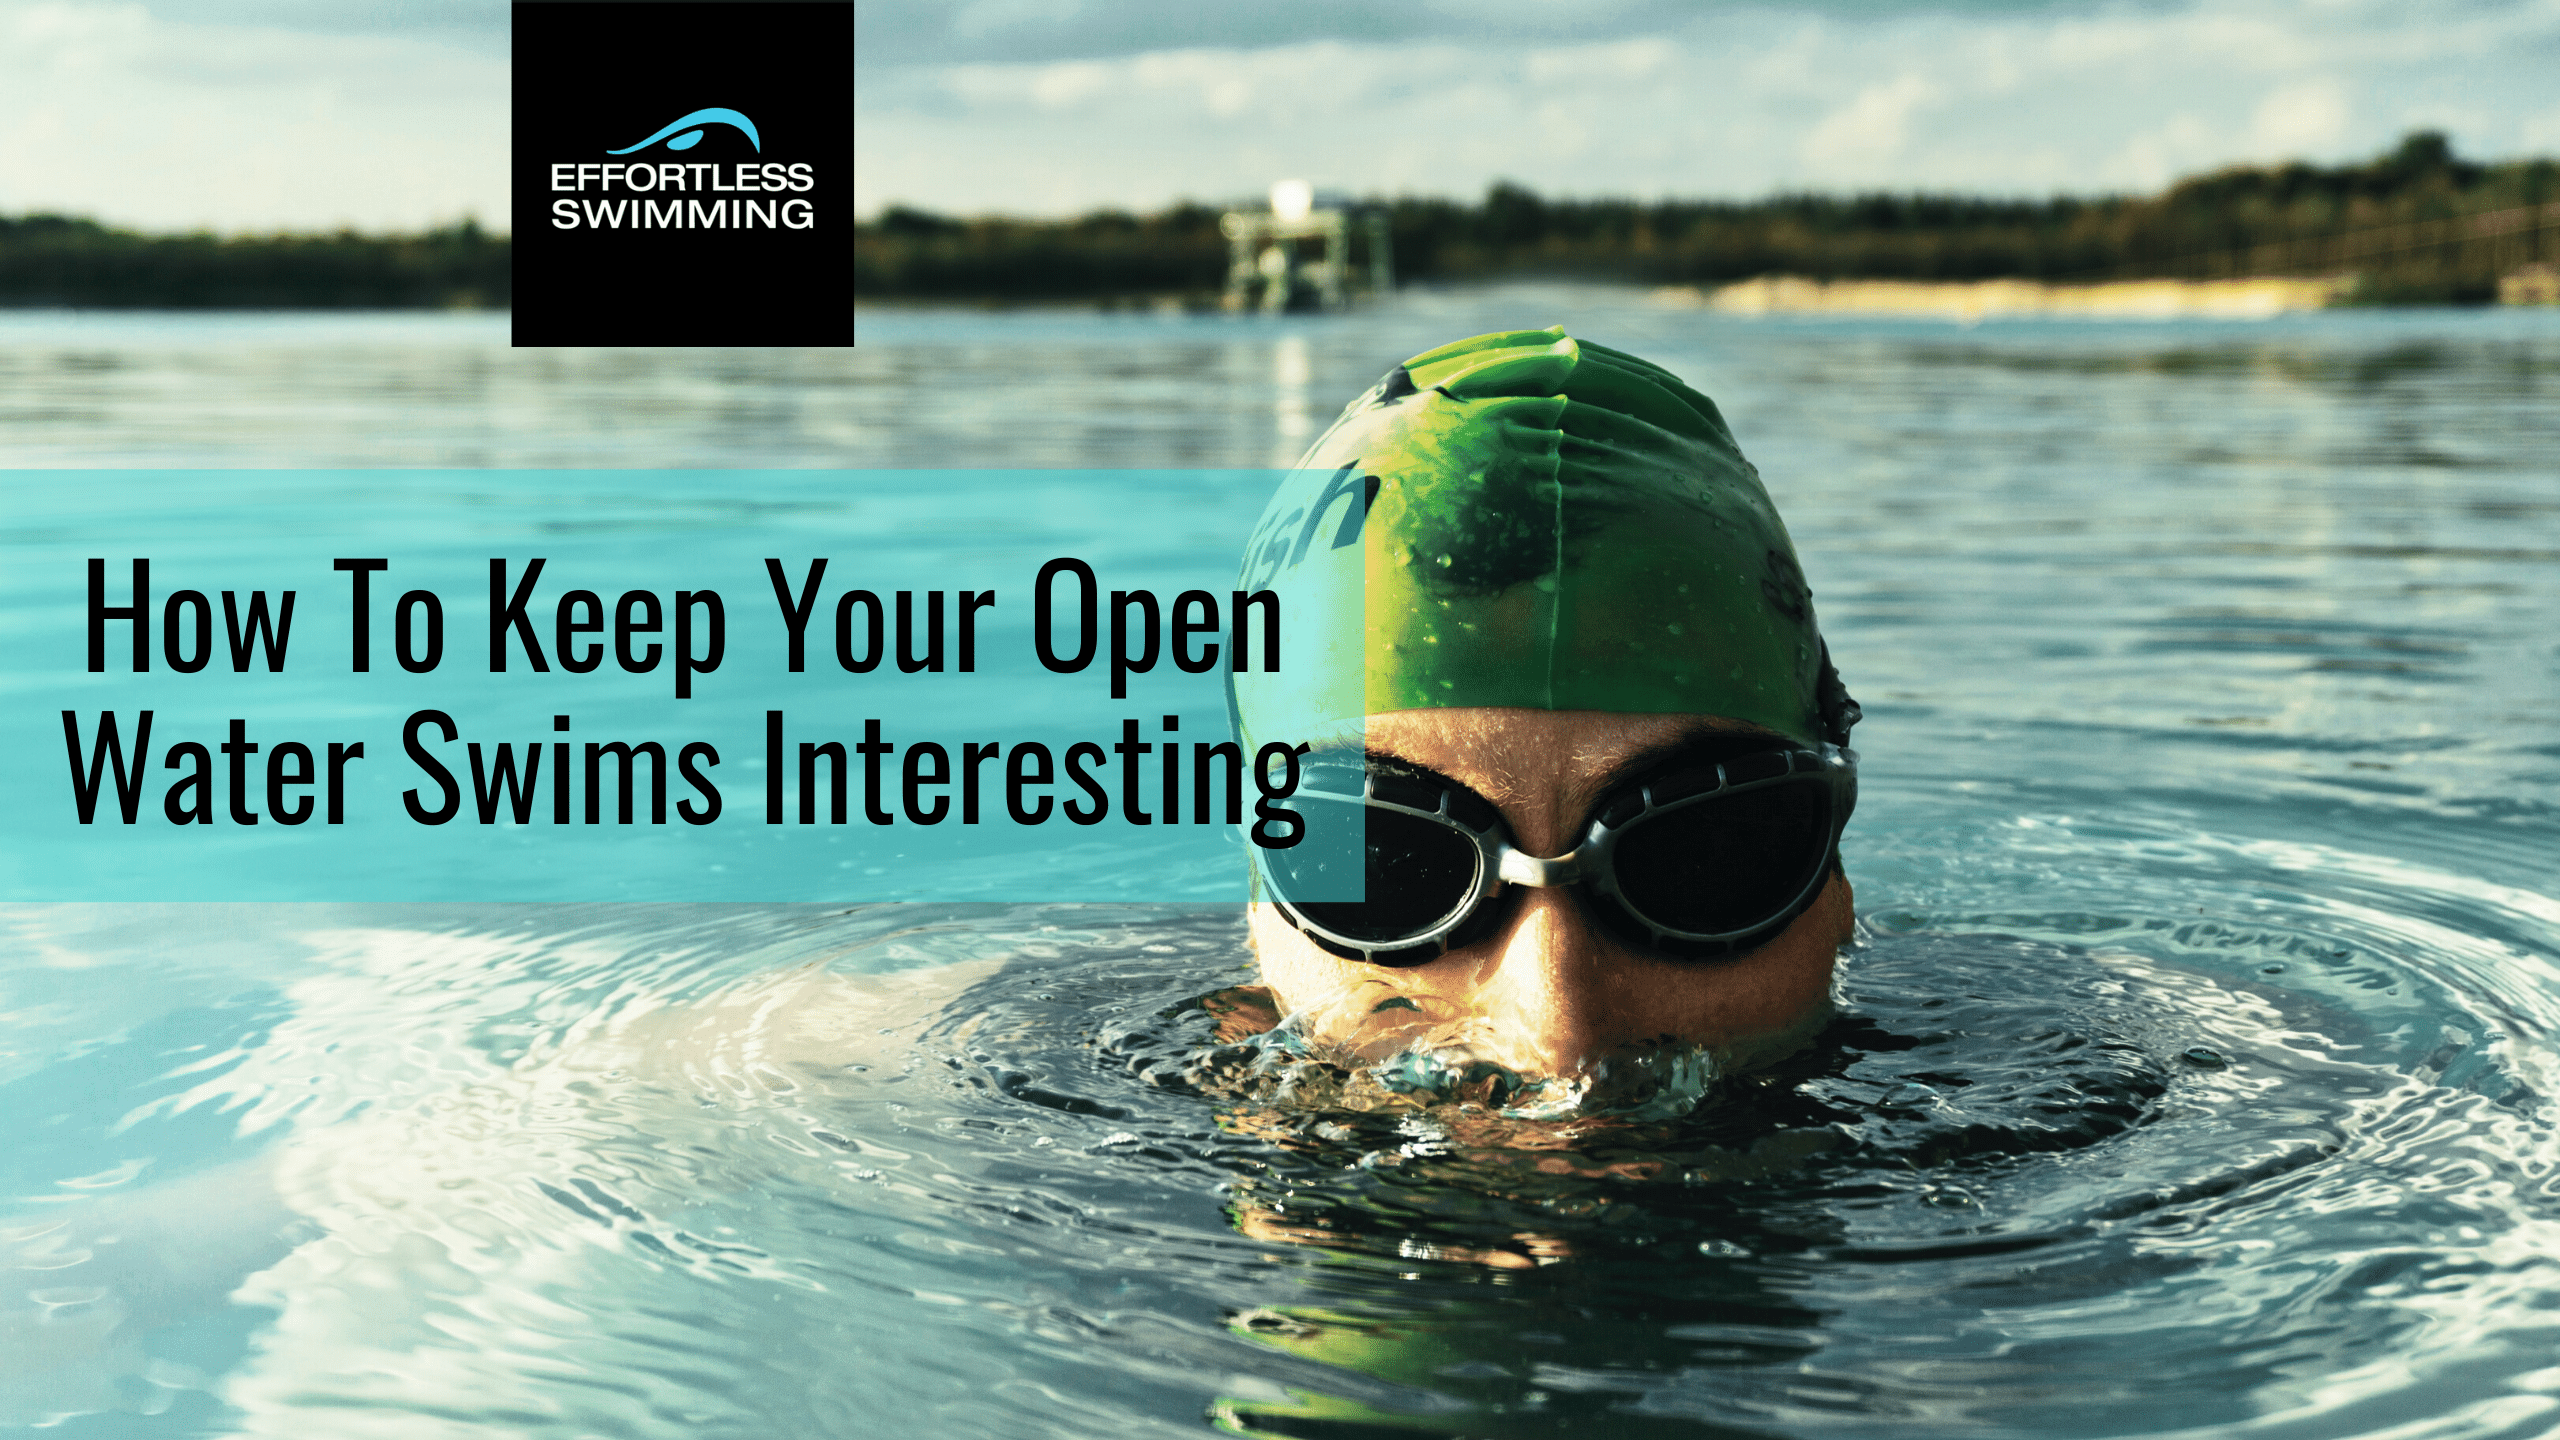 How To Keep Your Open Water Swims Interesting